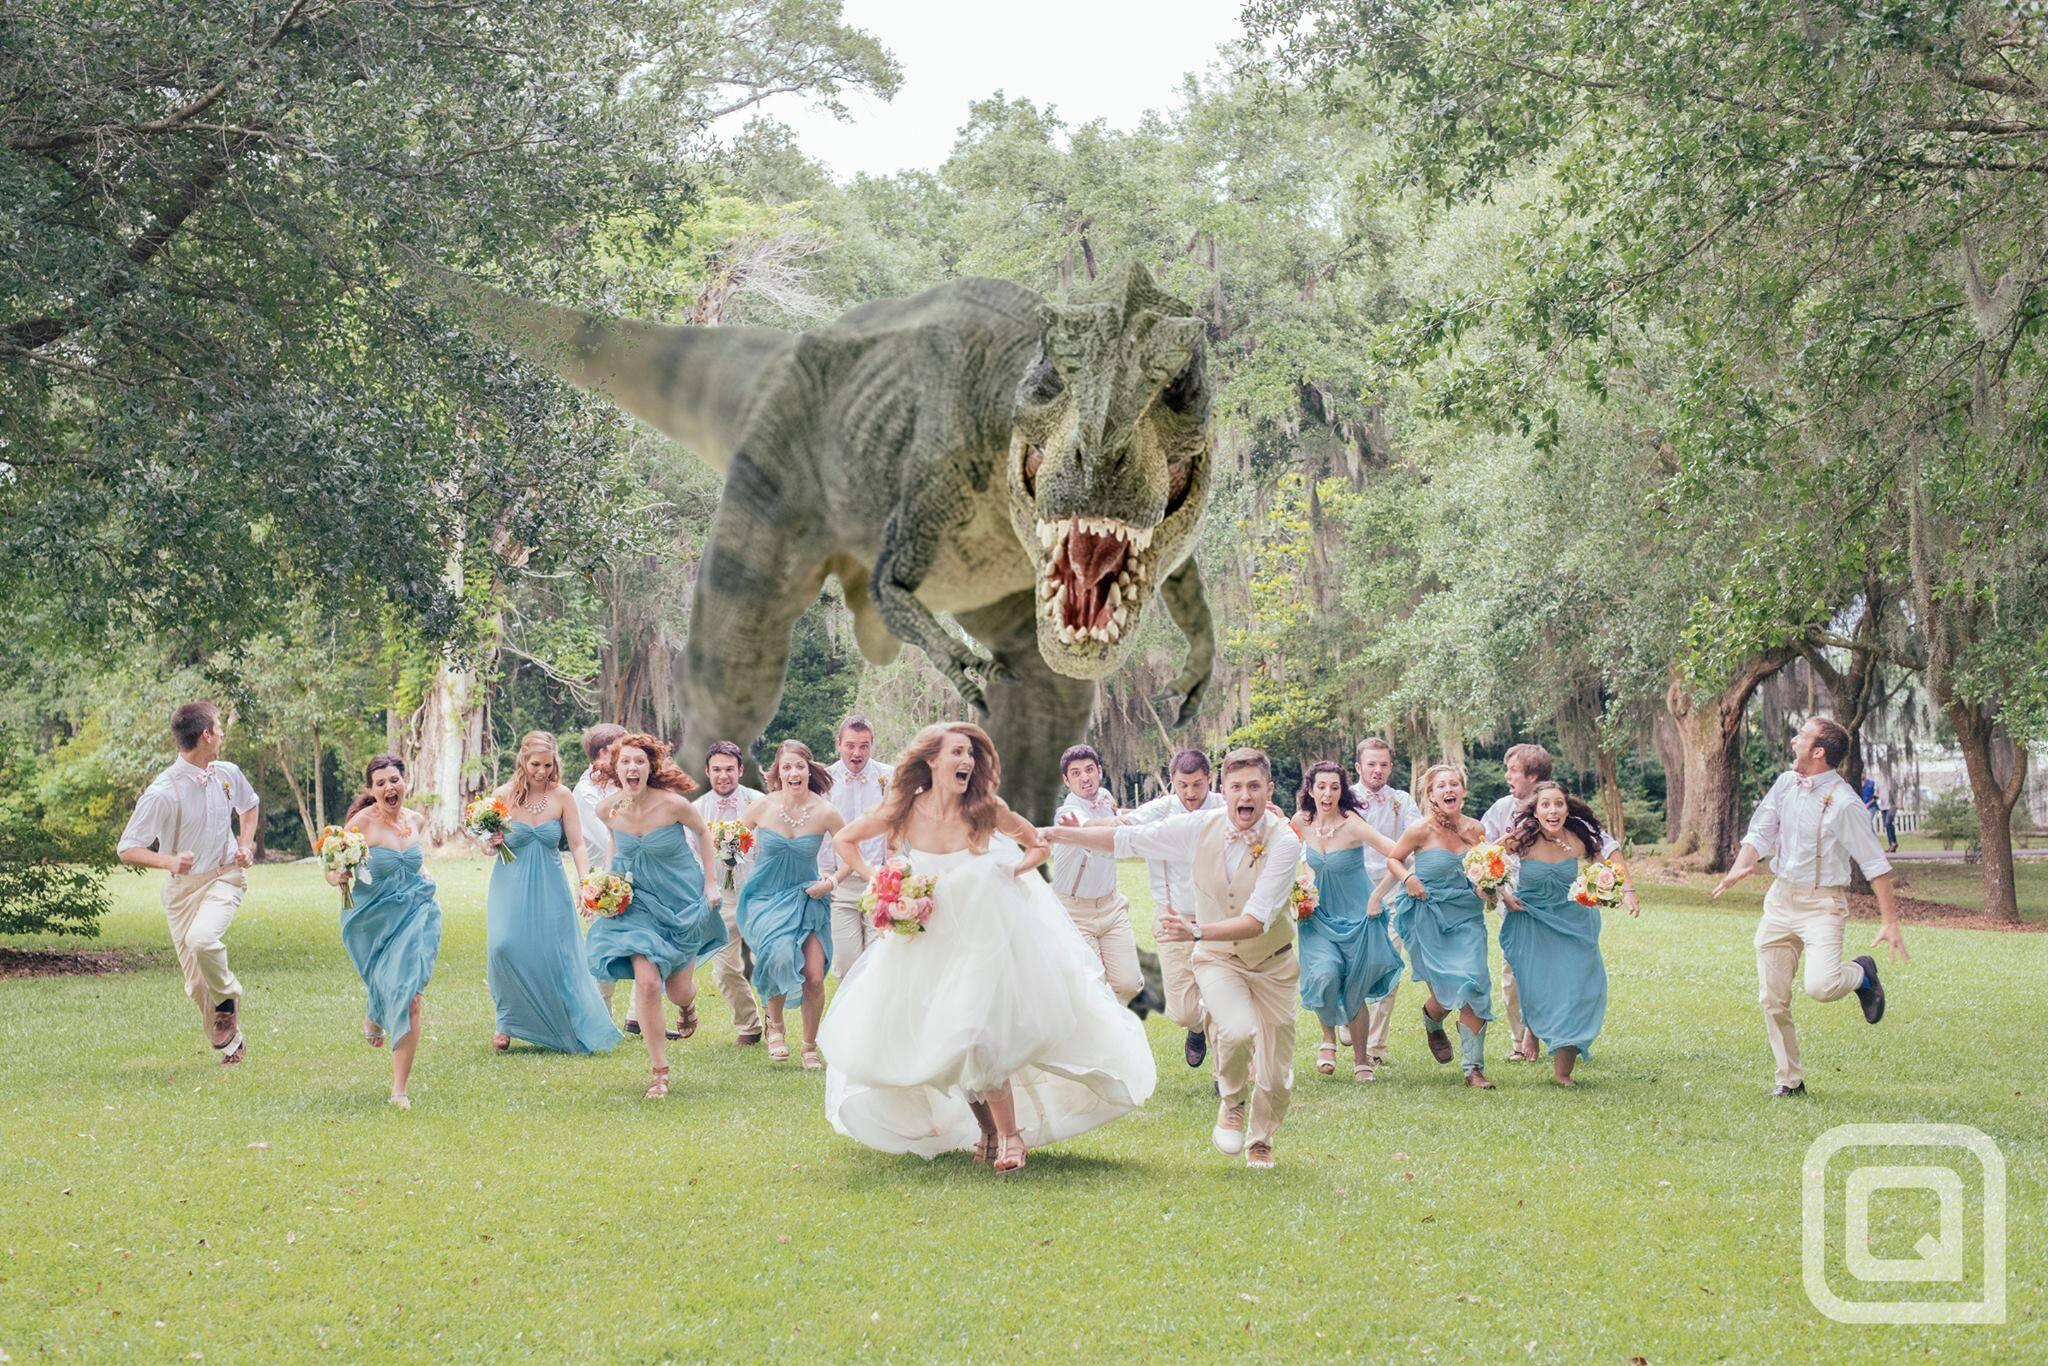 'Best Wedding Photo Ever' features T-rex chasing after bridal party: http://t.co/bg0186YMvT